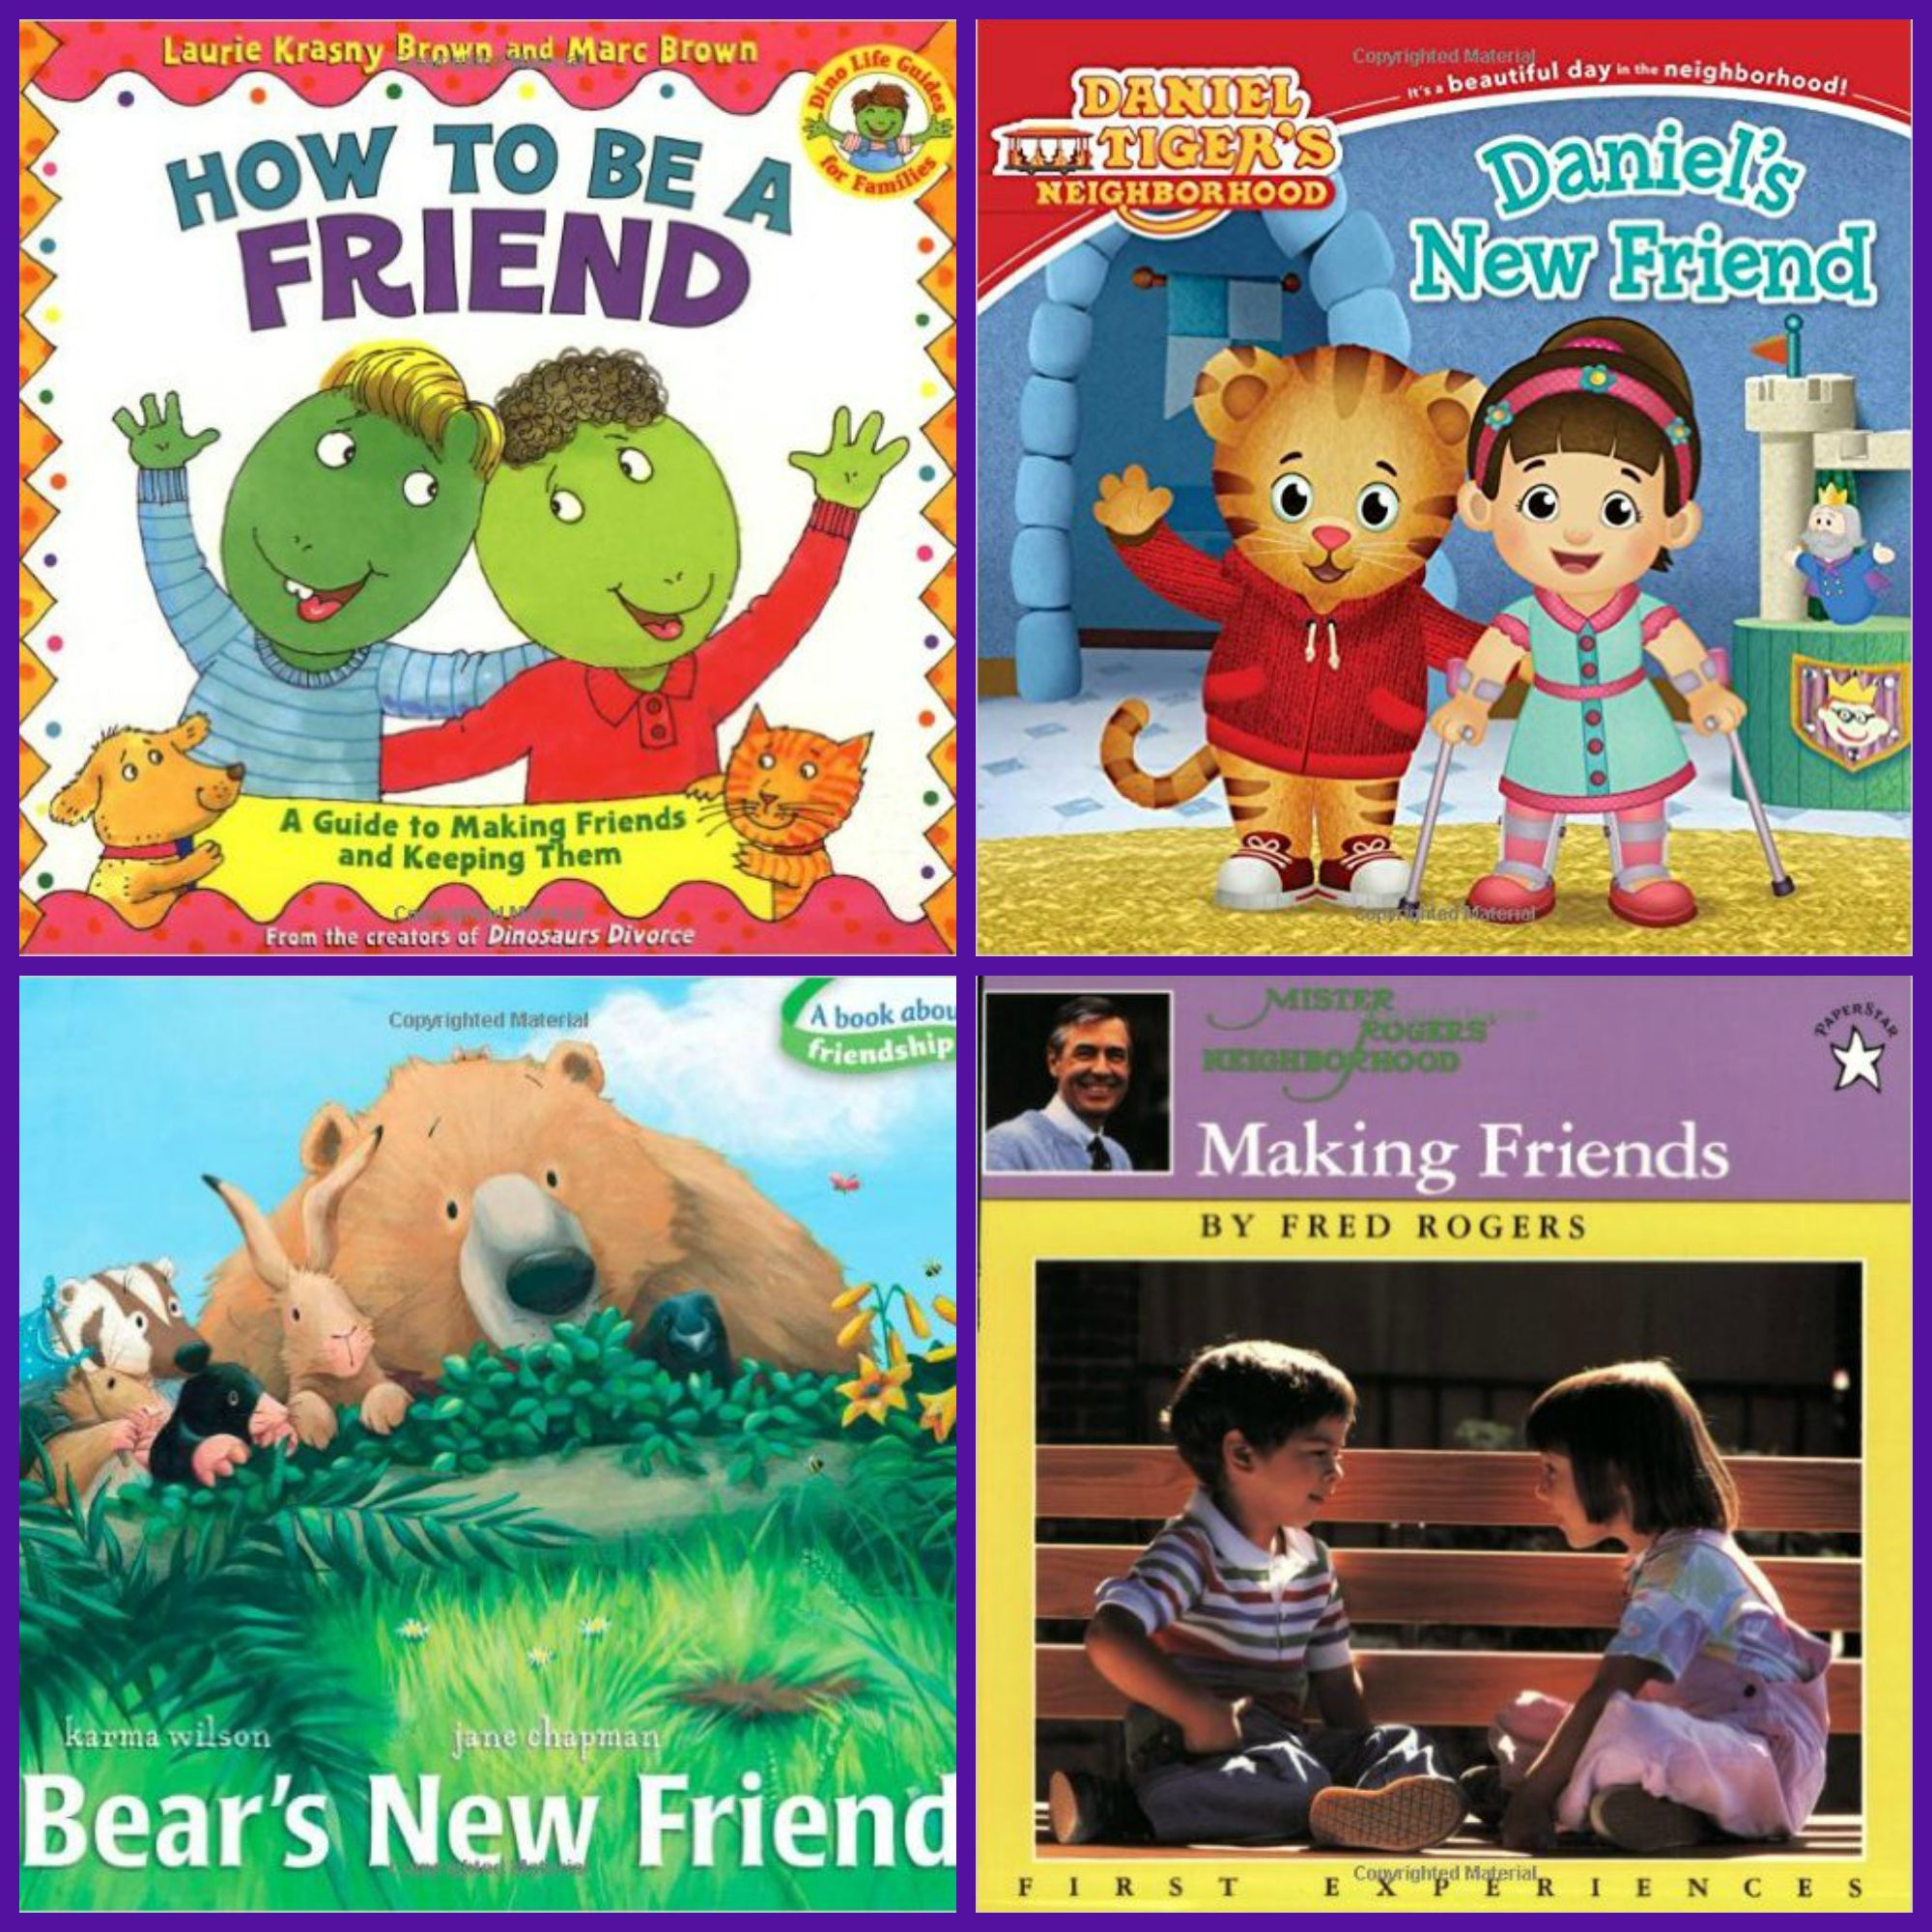 Books for Preschoolers about Making (and KEEPING) Friends!